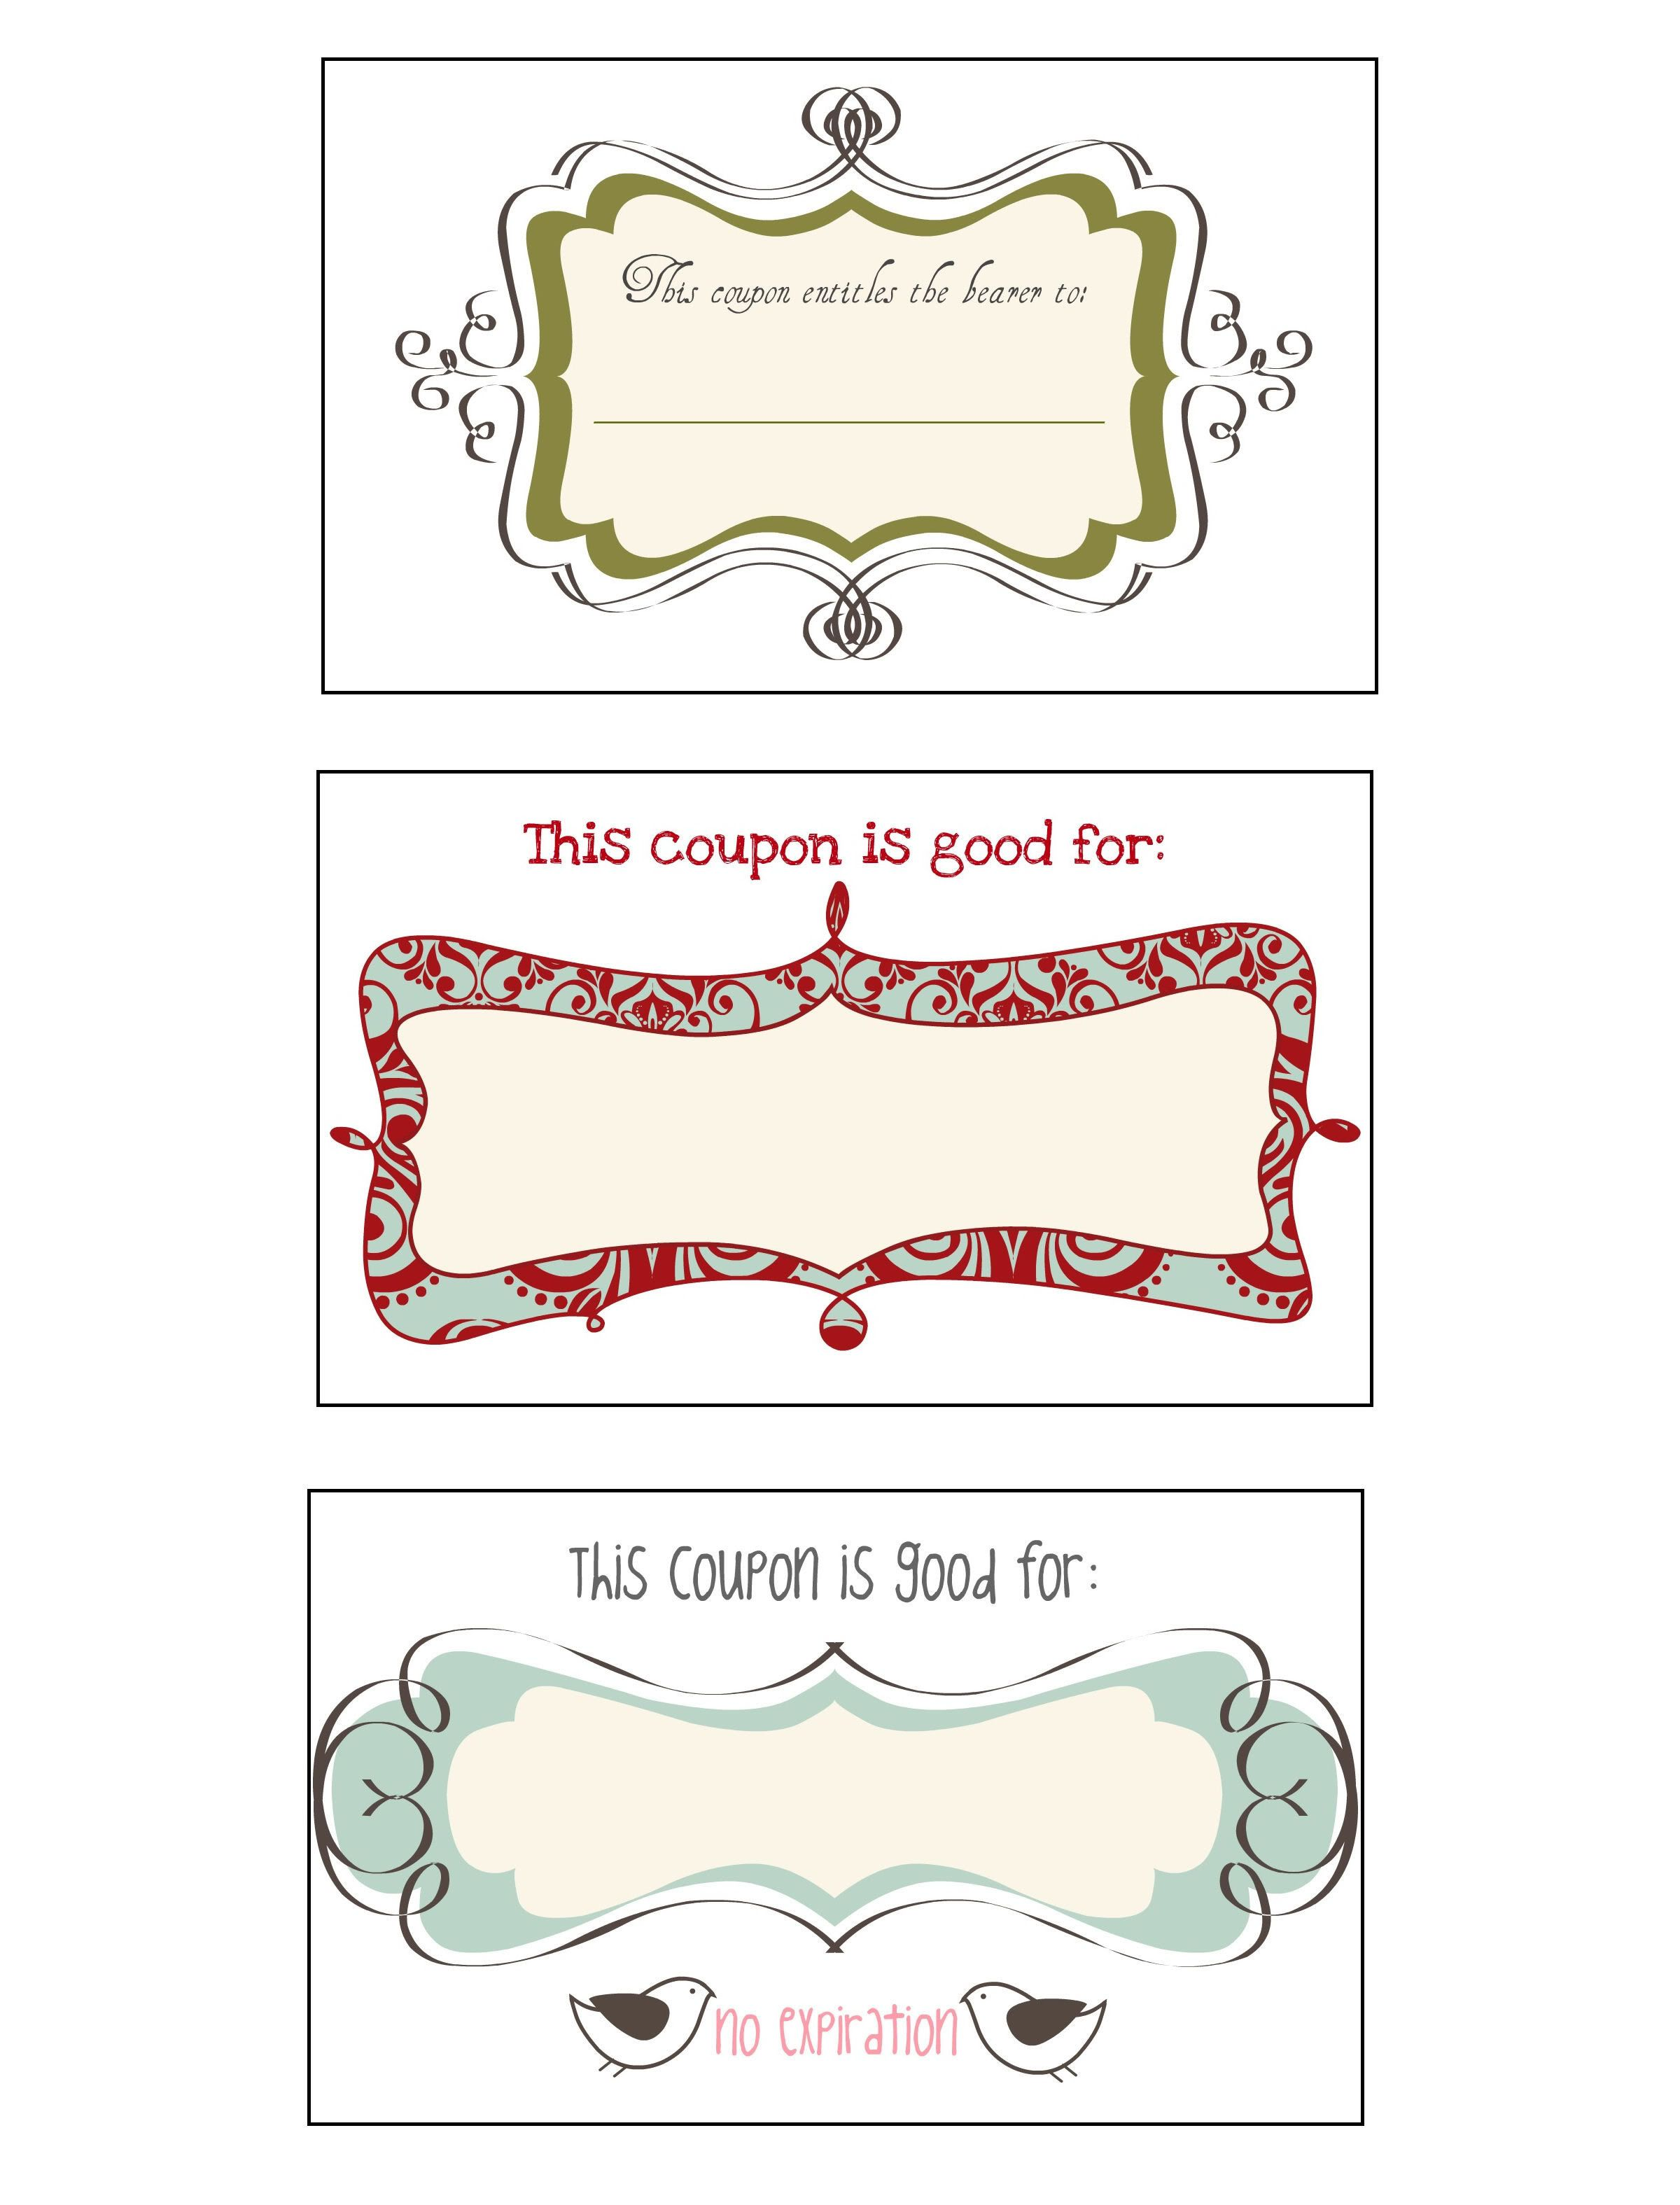 Coupons  Gifts    Printable Coupons And Crafty